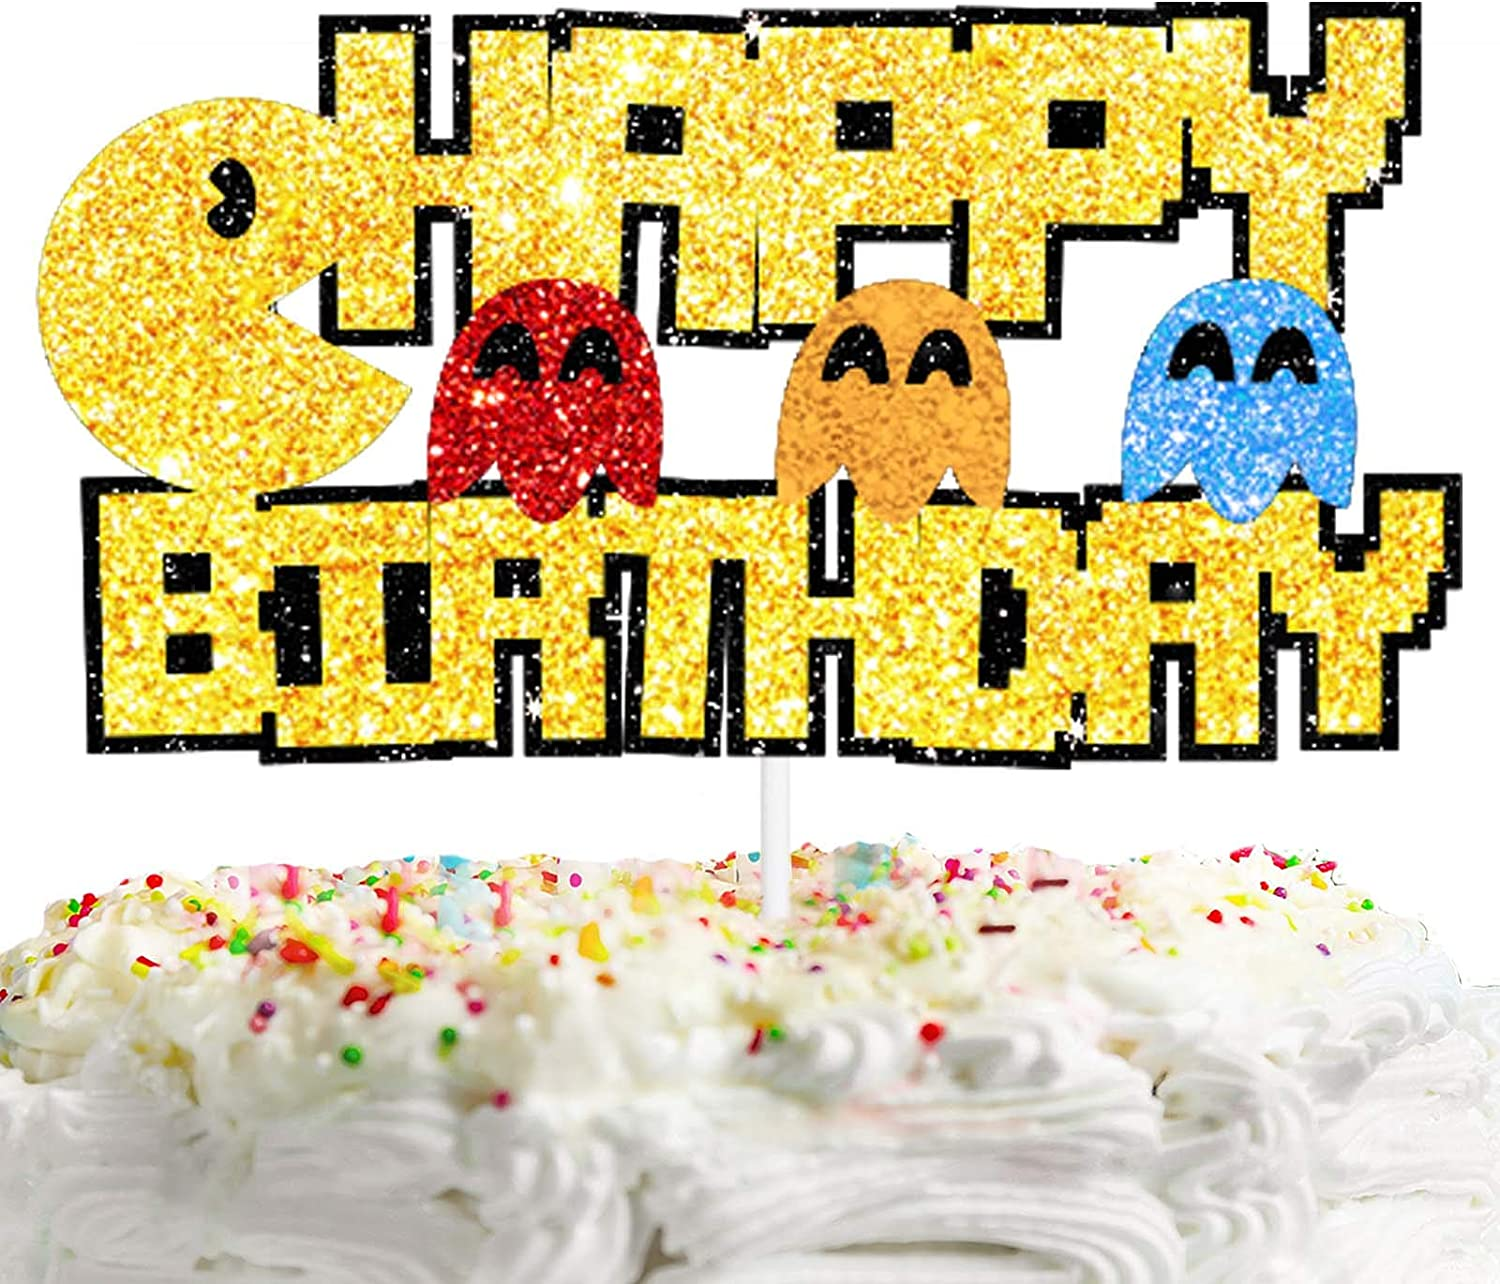 Happy Birthday Cake Topper Video Games Theme Kids Party Decor Picks for Retro Pixel Game Decorations Supplies